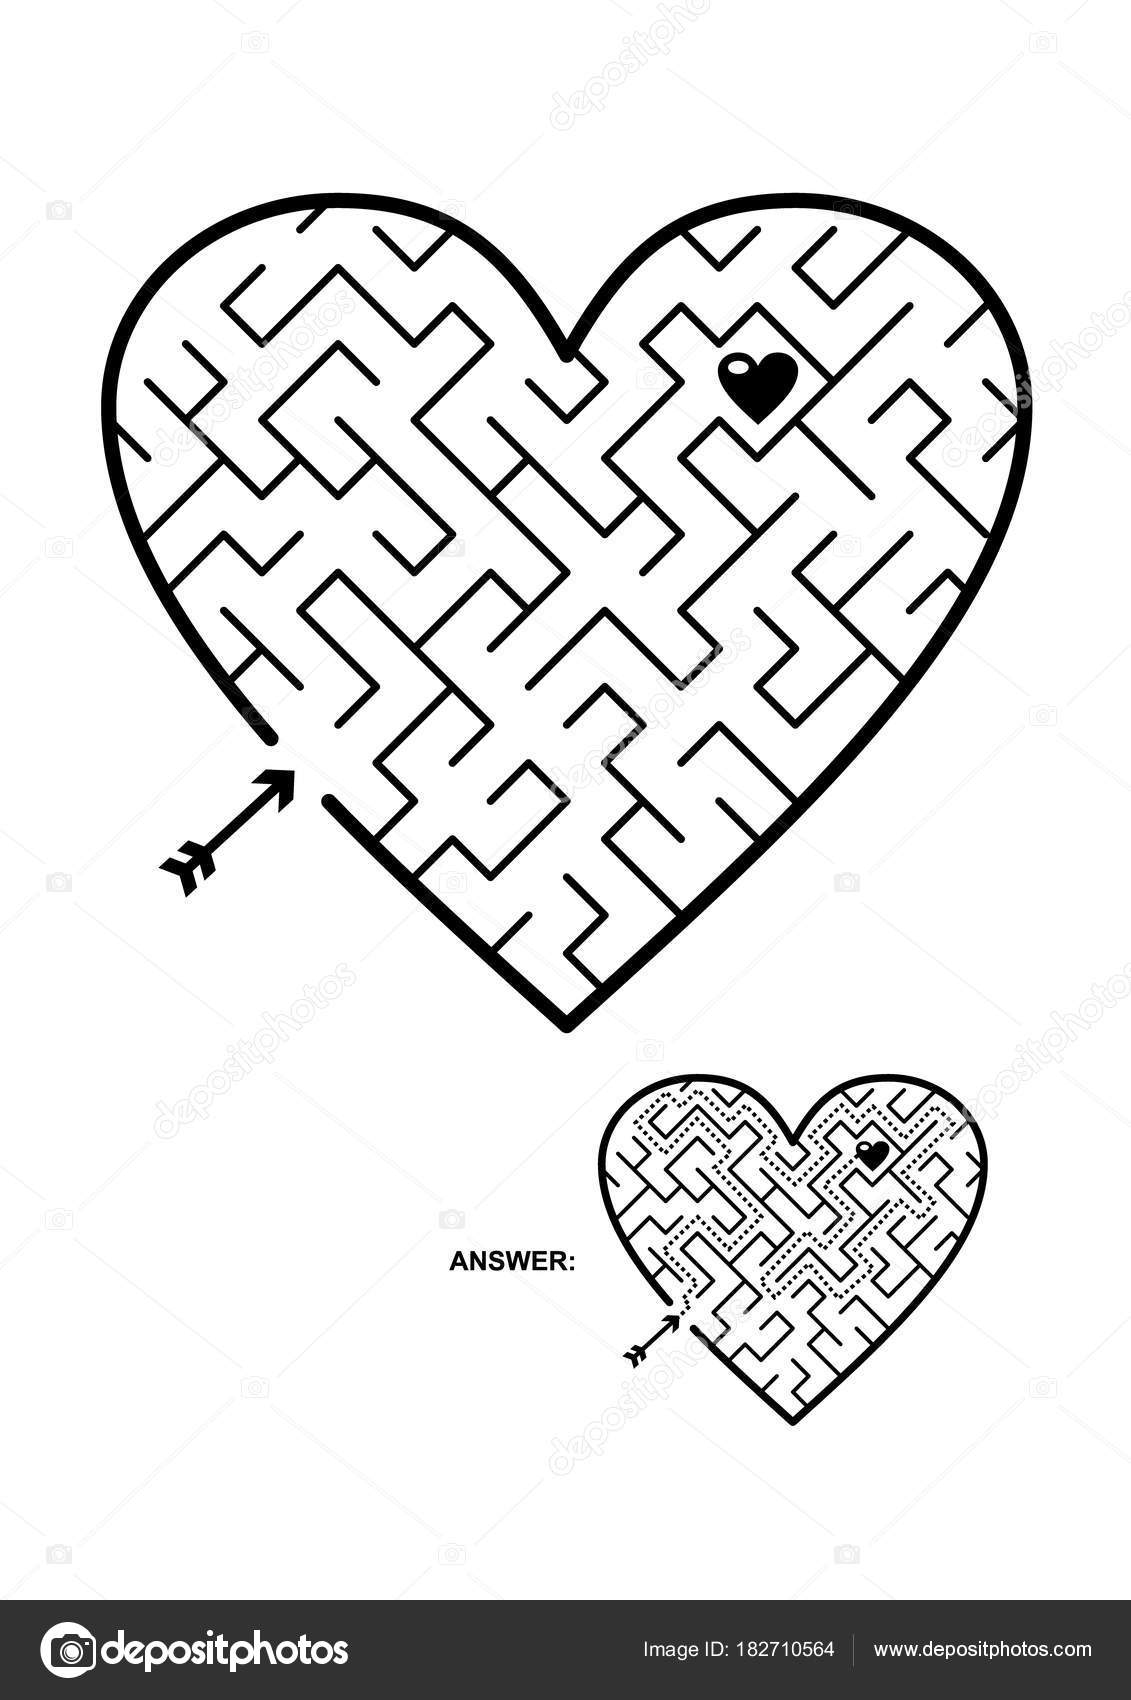 It is a picture of Printable Heart Shapes in craft